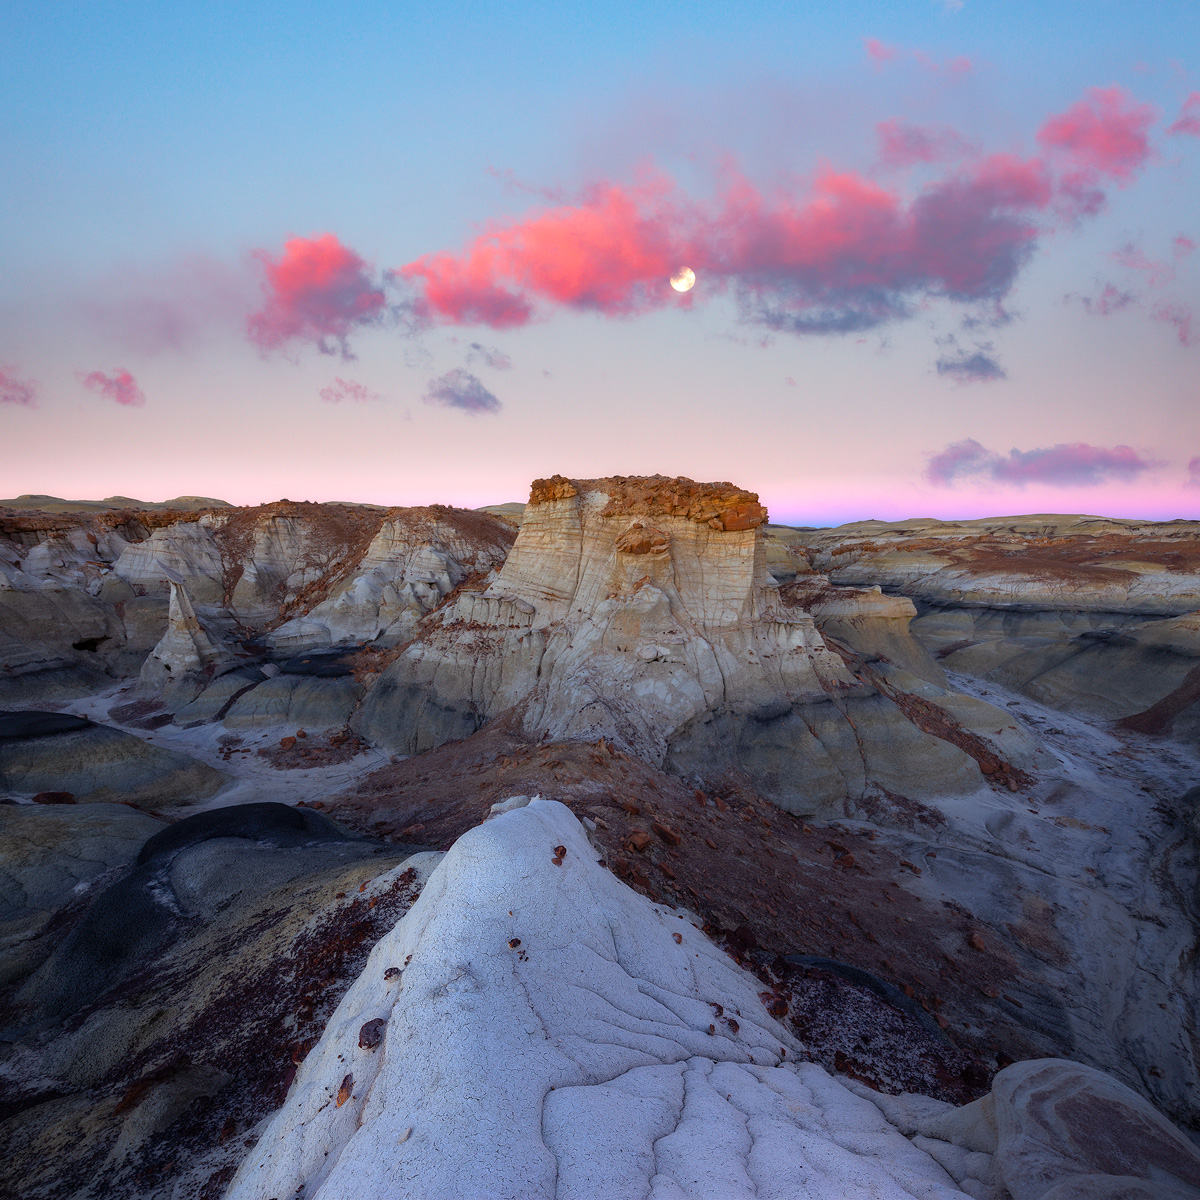 The full moon rises above the Belt of Venus deep in the Bisti Badlands of New Mexico.